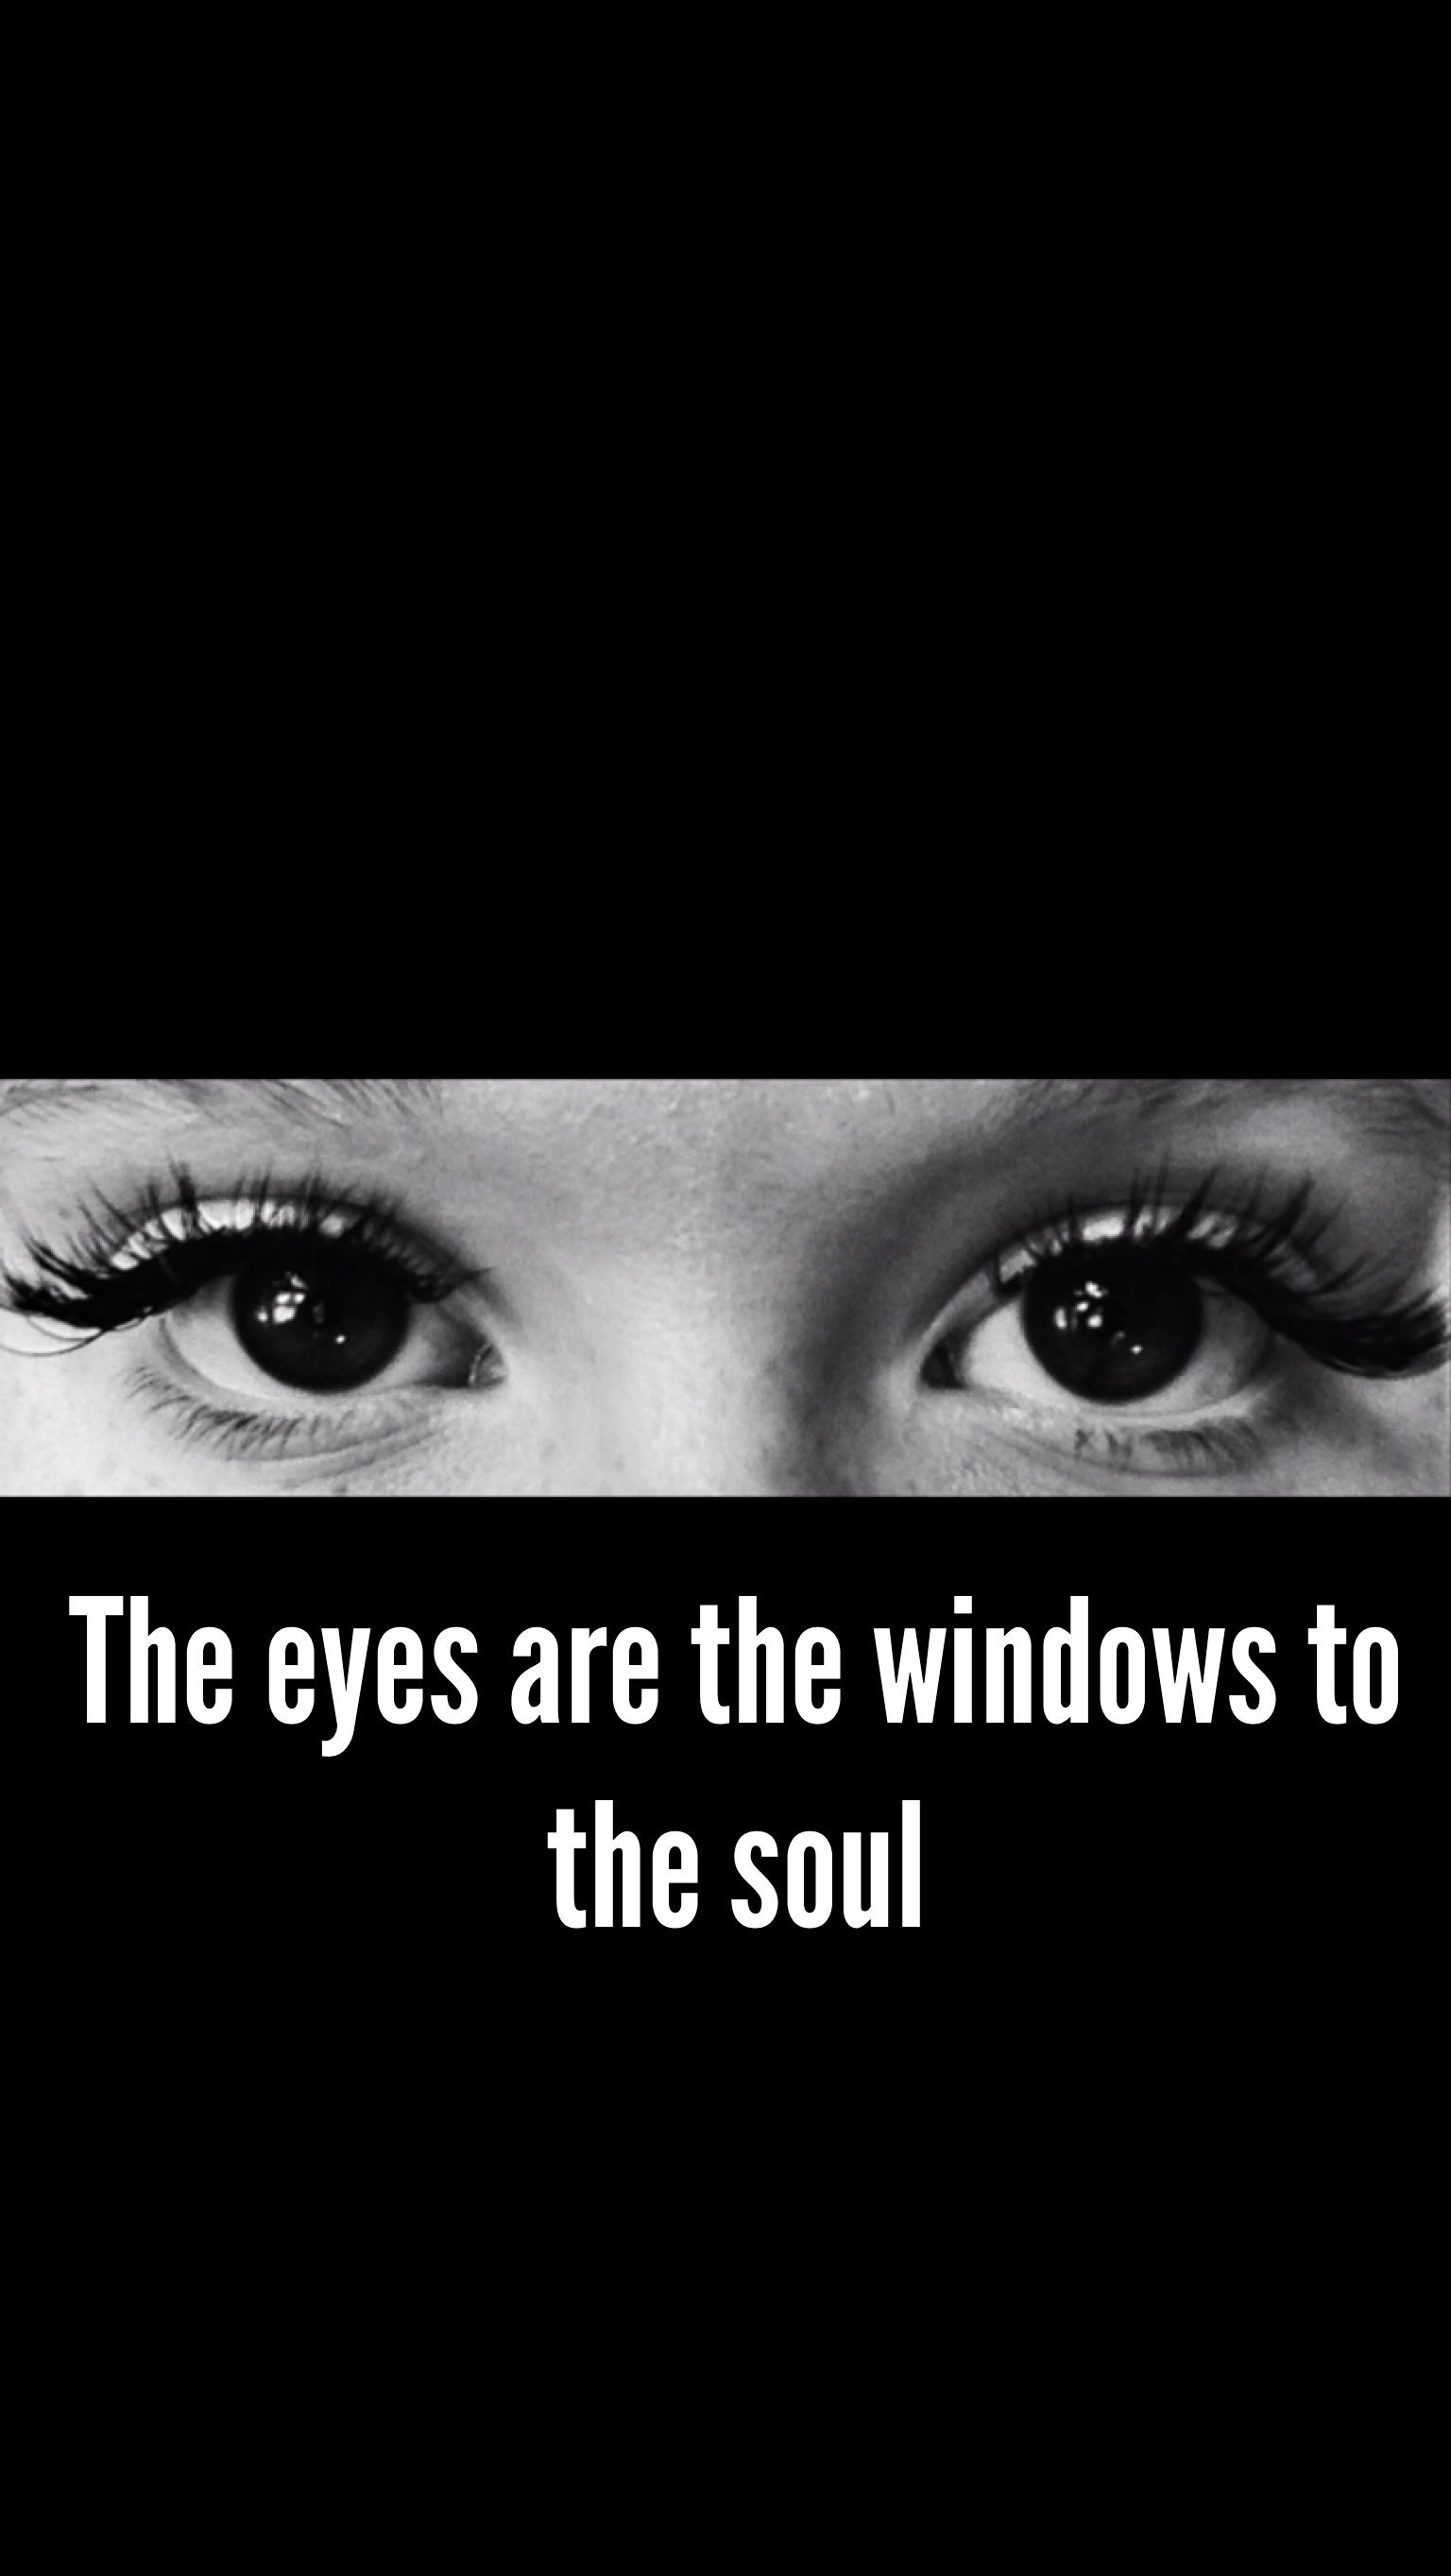 Scientists discover that eyes really are 'the window to the soul'